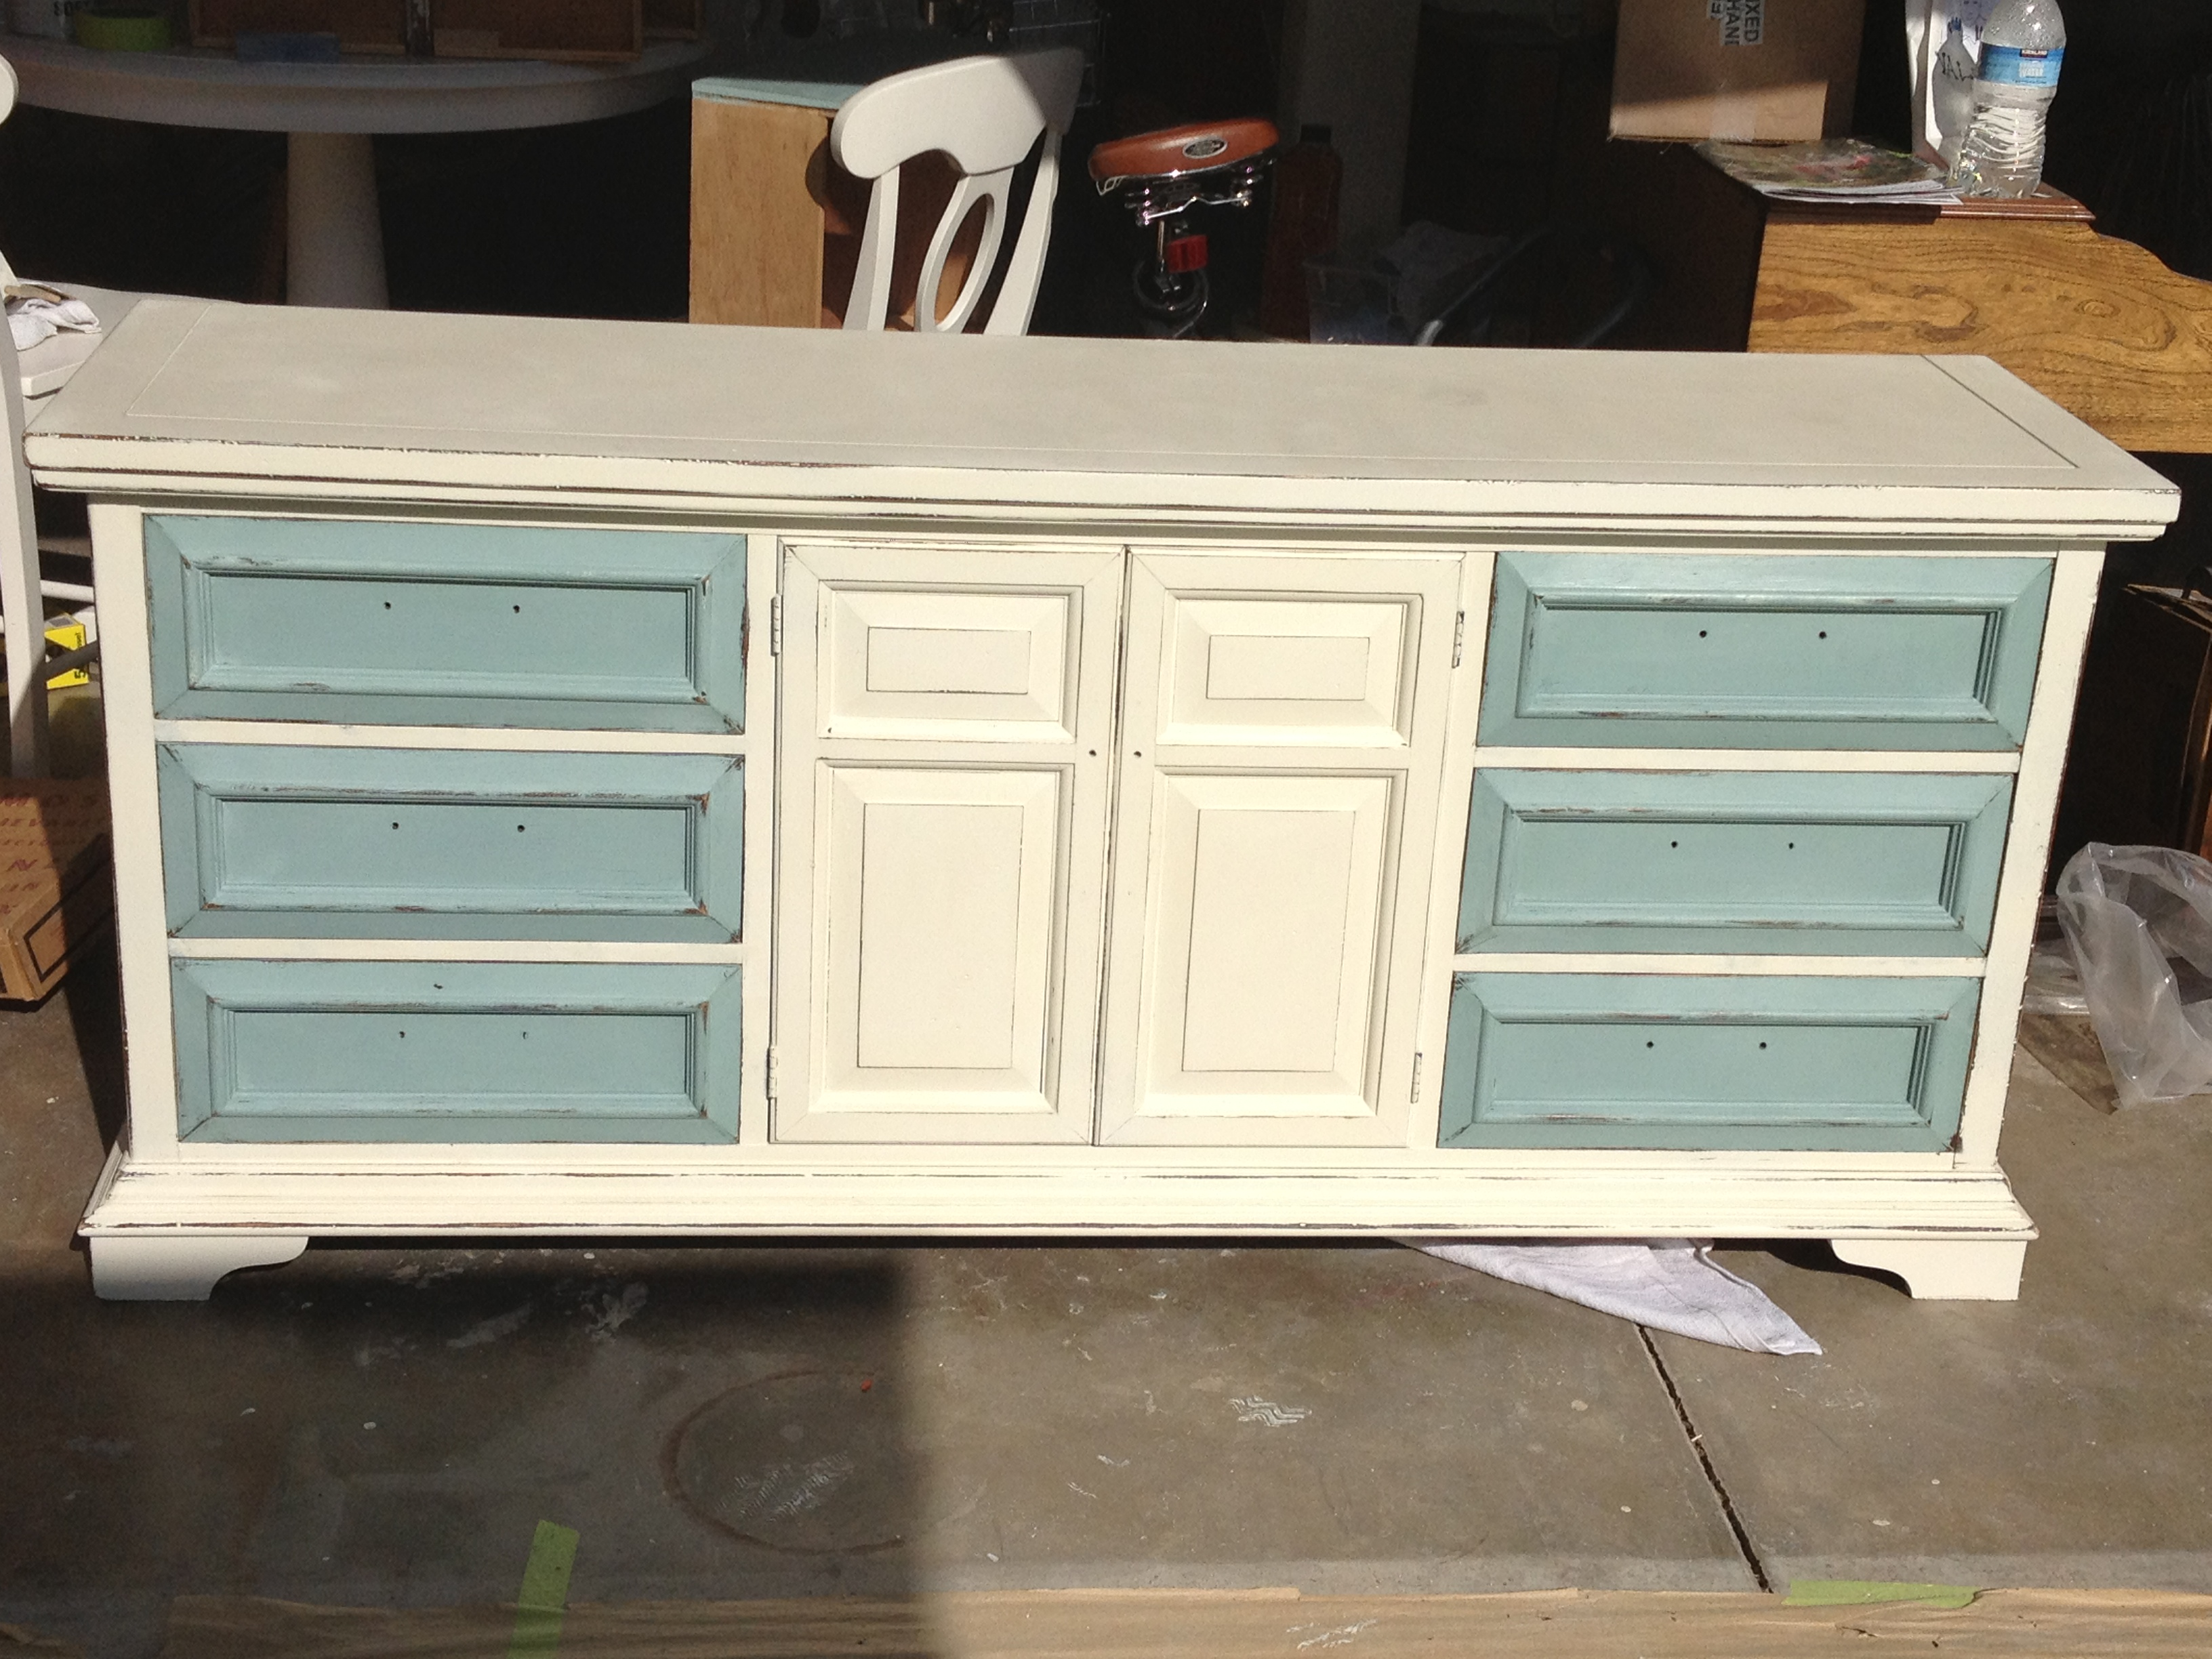 Repurposed furniture ideas tv cabinet just b cause for Repurposed furniture before and after